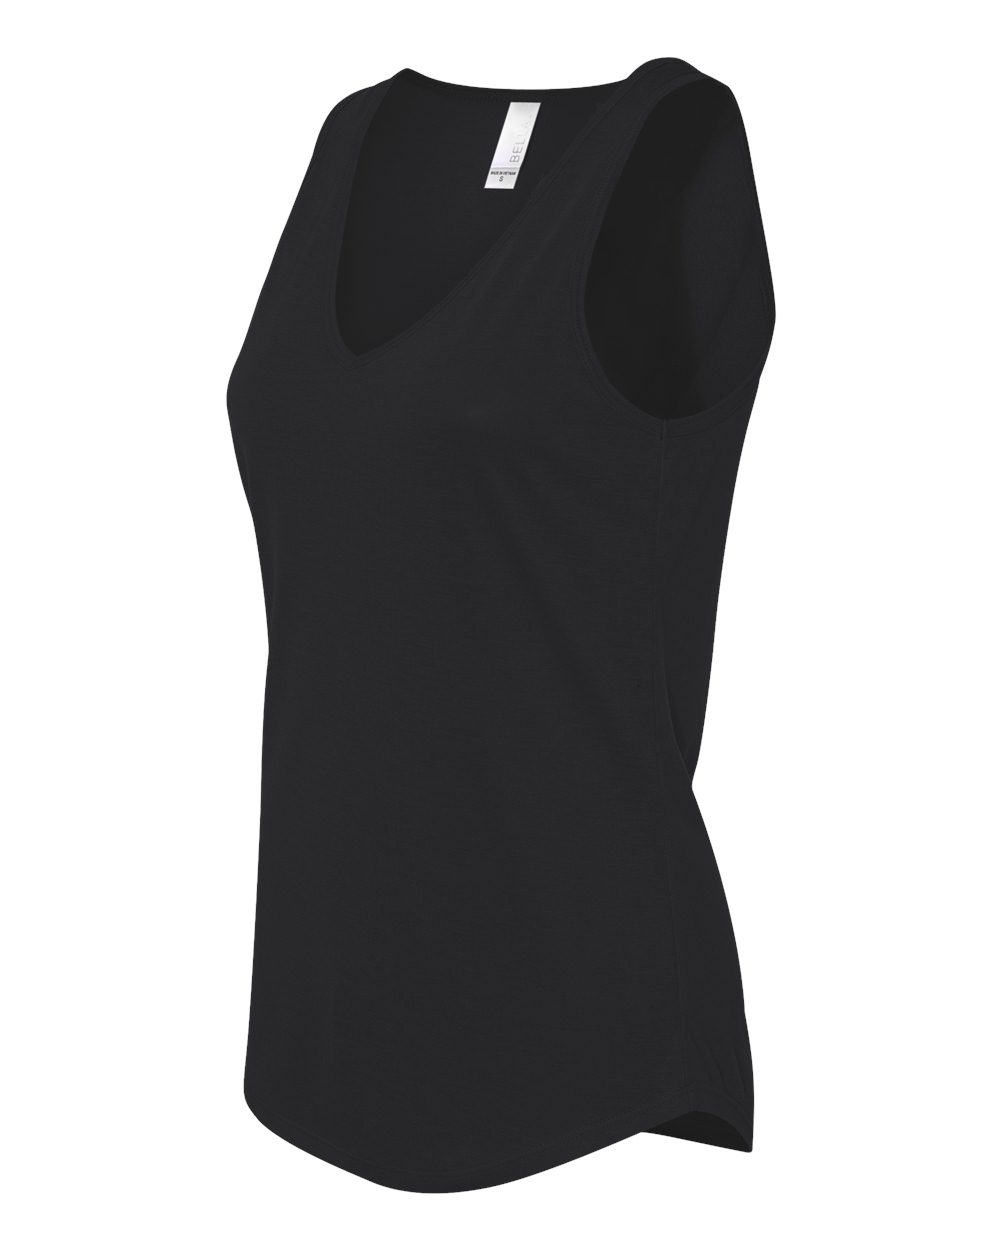 Bella 8805 - Ladies' Flowy V-Neck Tank